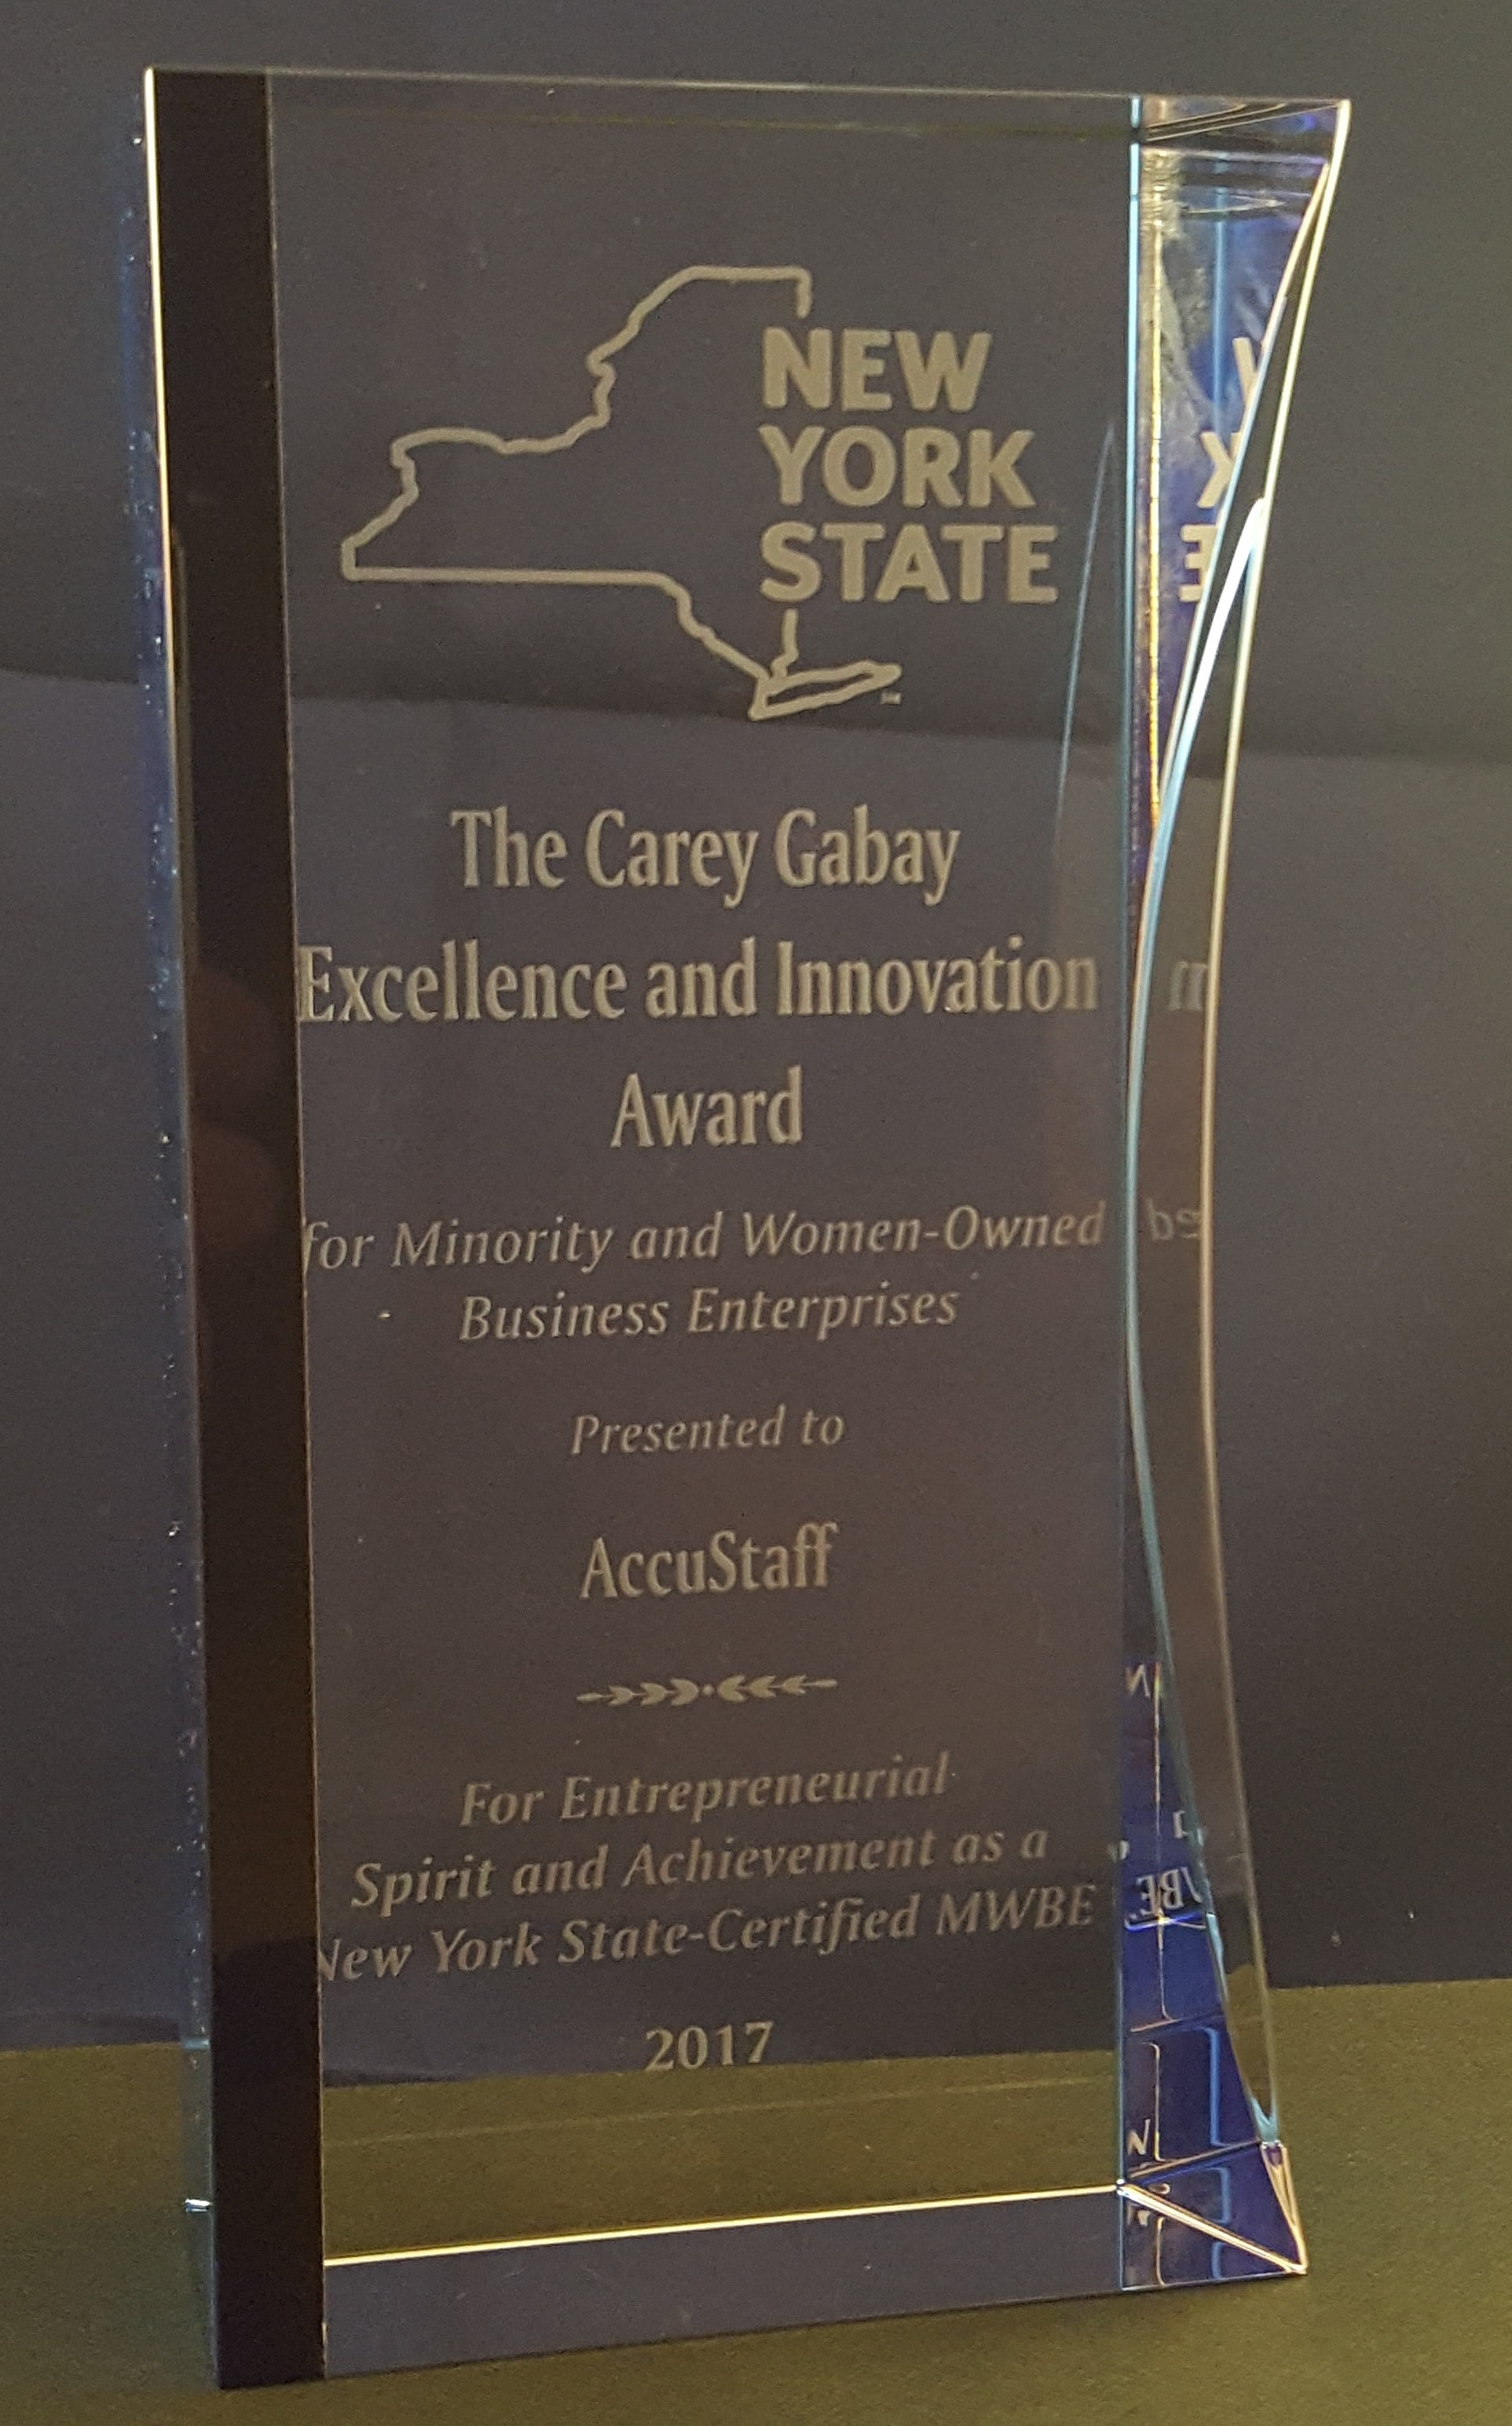 glass trophy for Carey Gabay Innovation Award